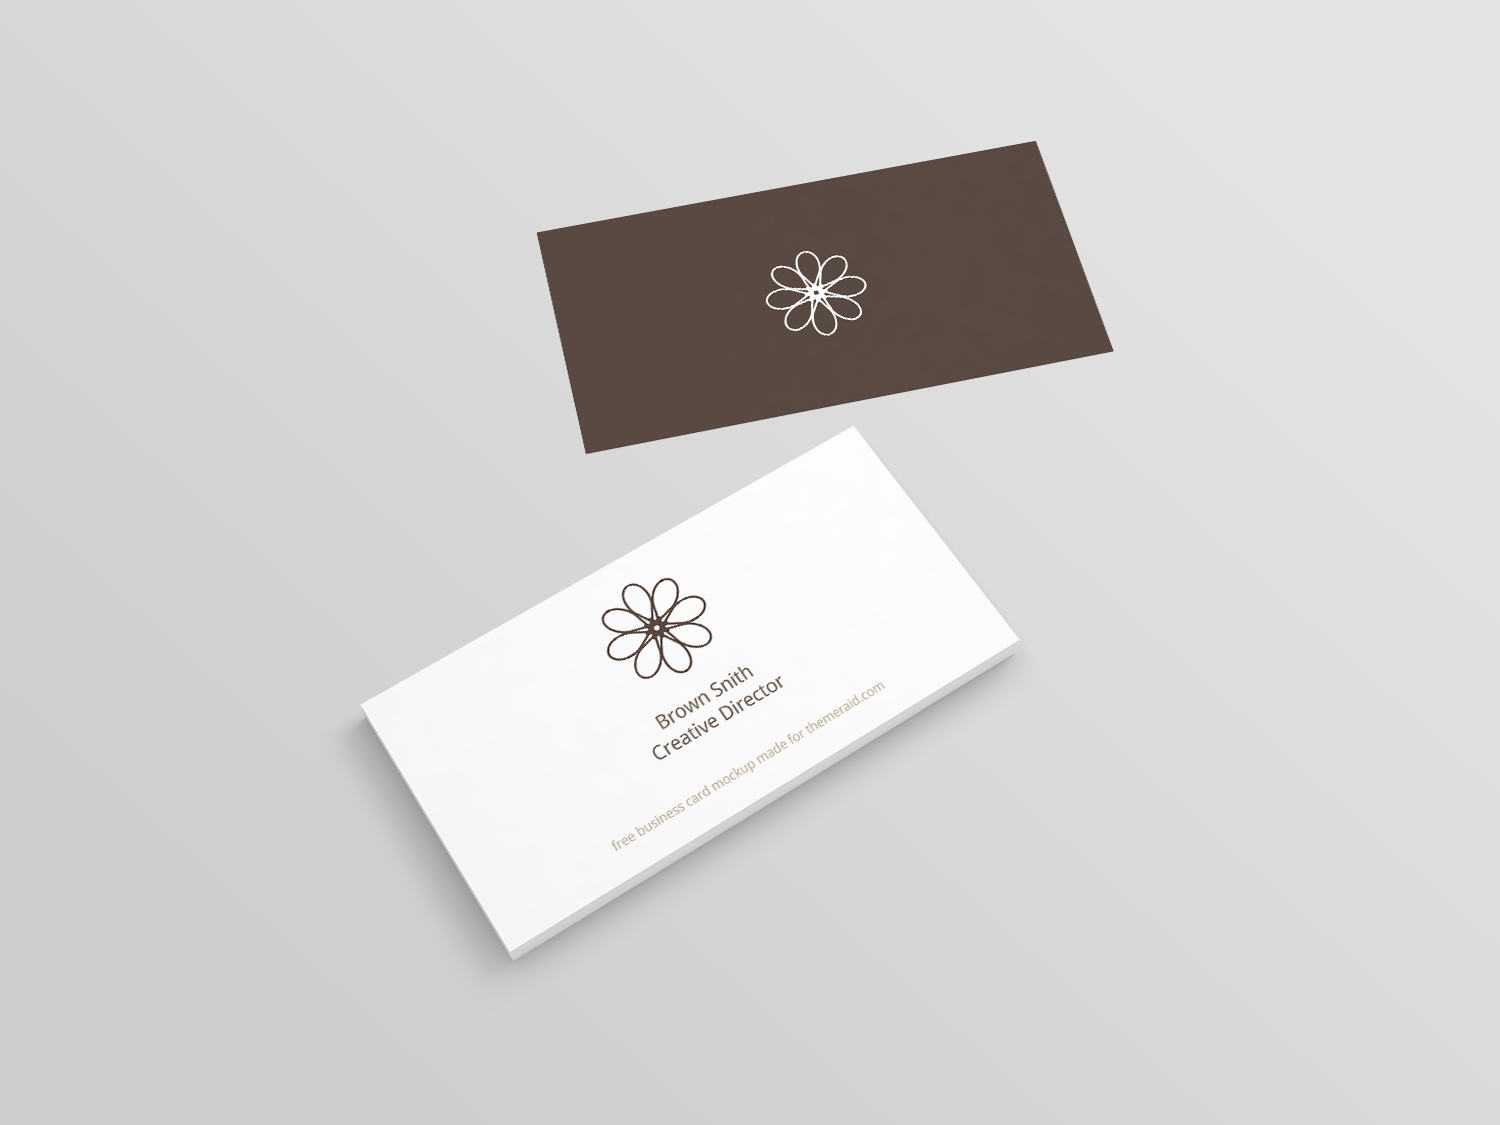 Perspective Business Cards 2